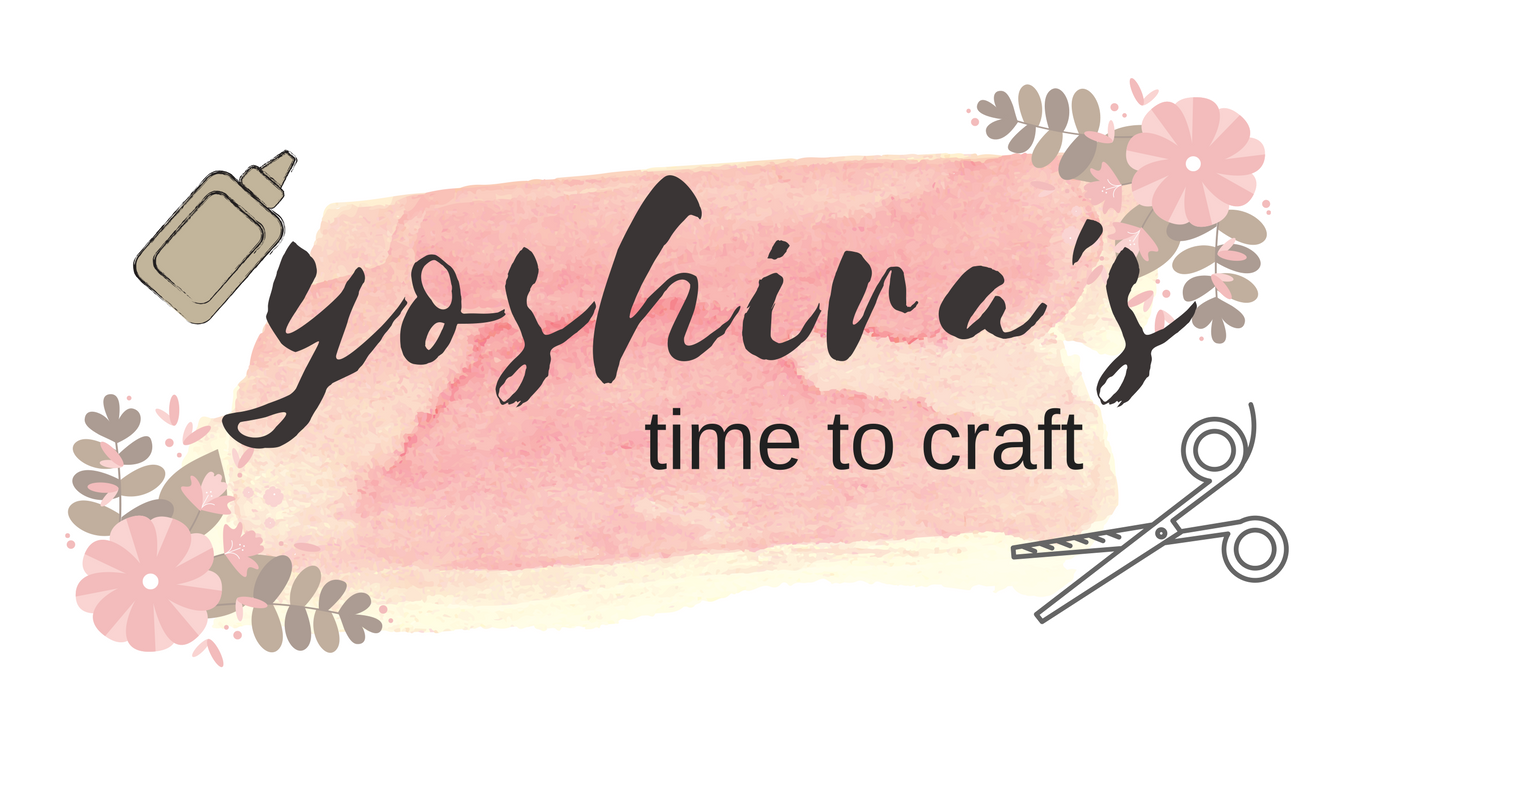 yoshira's time to craft